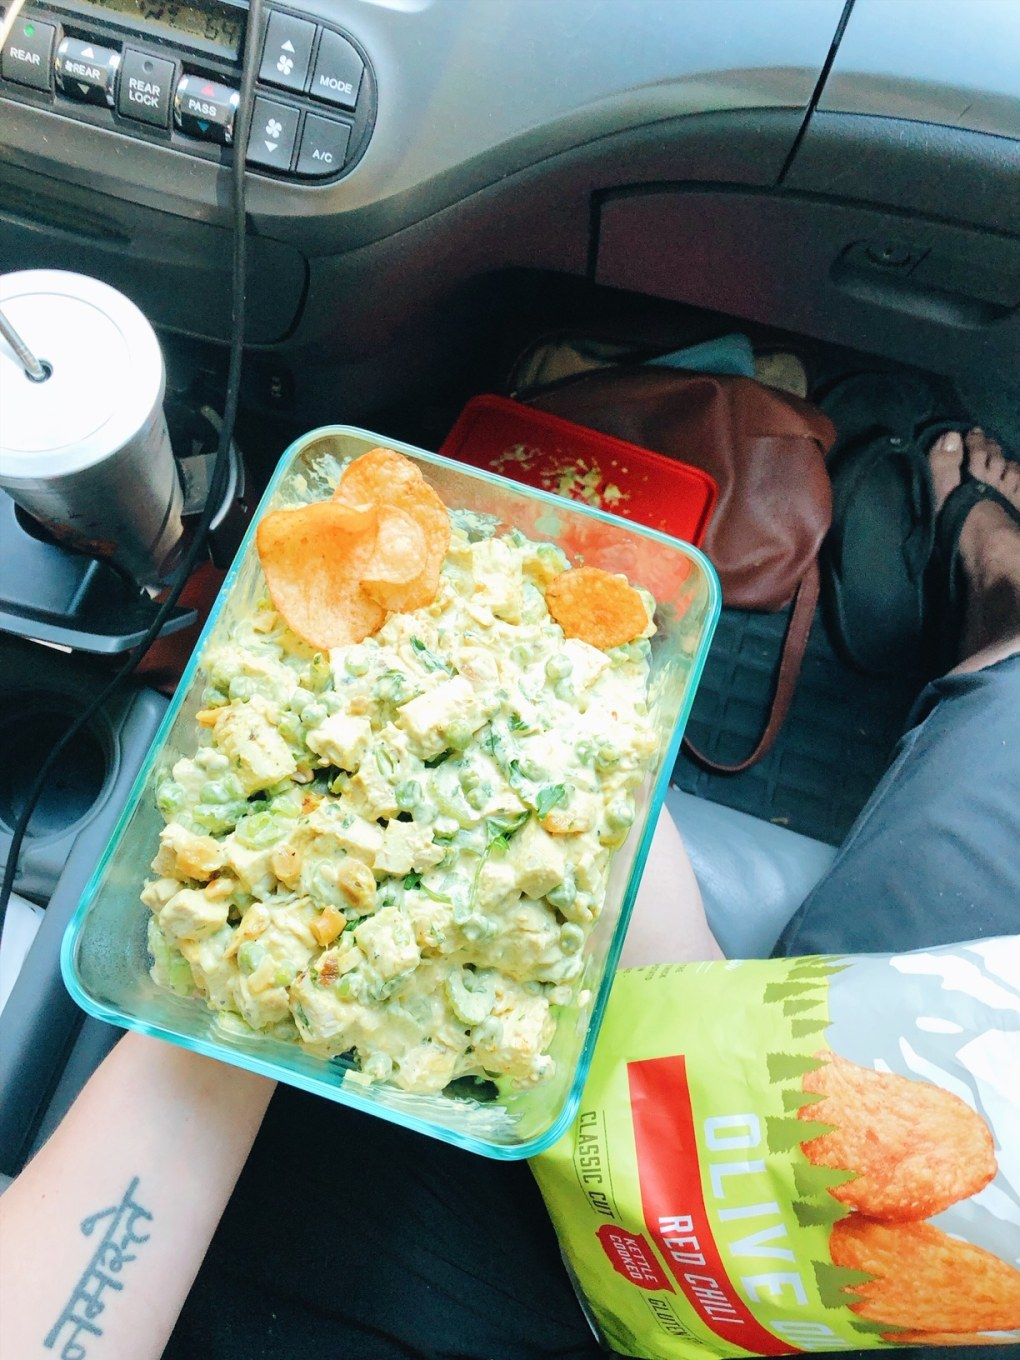 A person sitting in a car holding a glass tupperware with curried chicken salad and potato chips